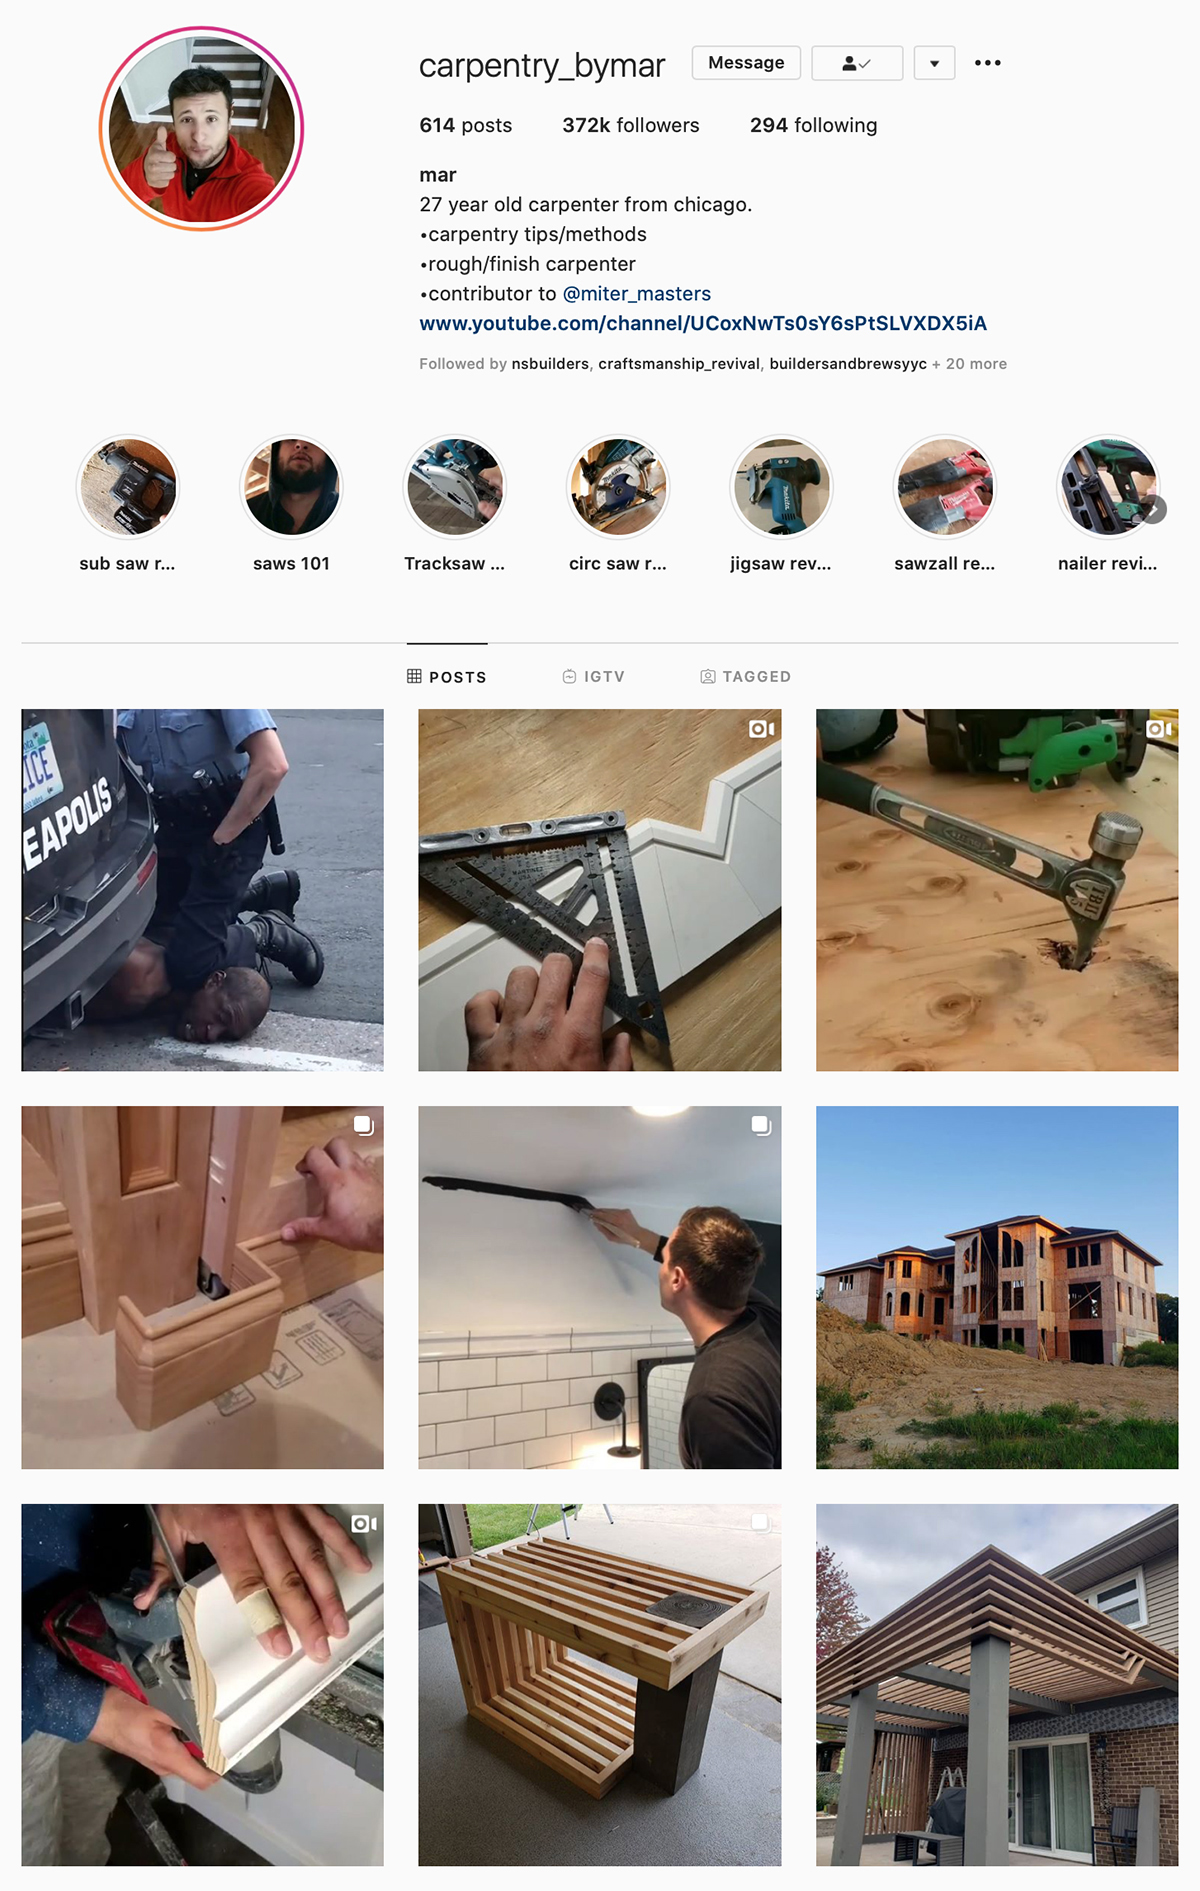 Best Construction Instagram Accounts Carpentry_bymar